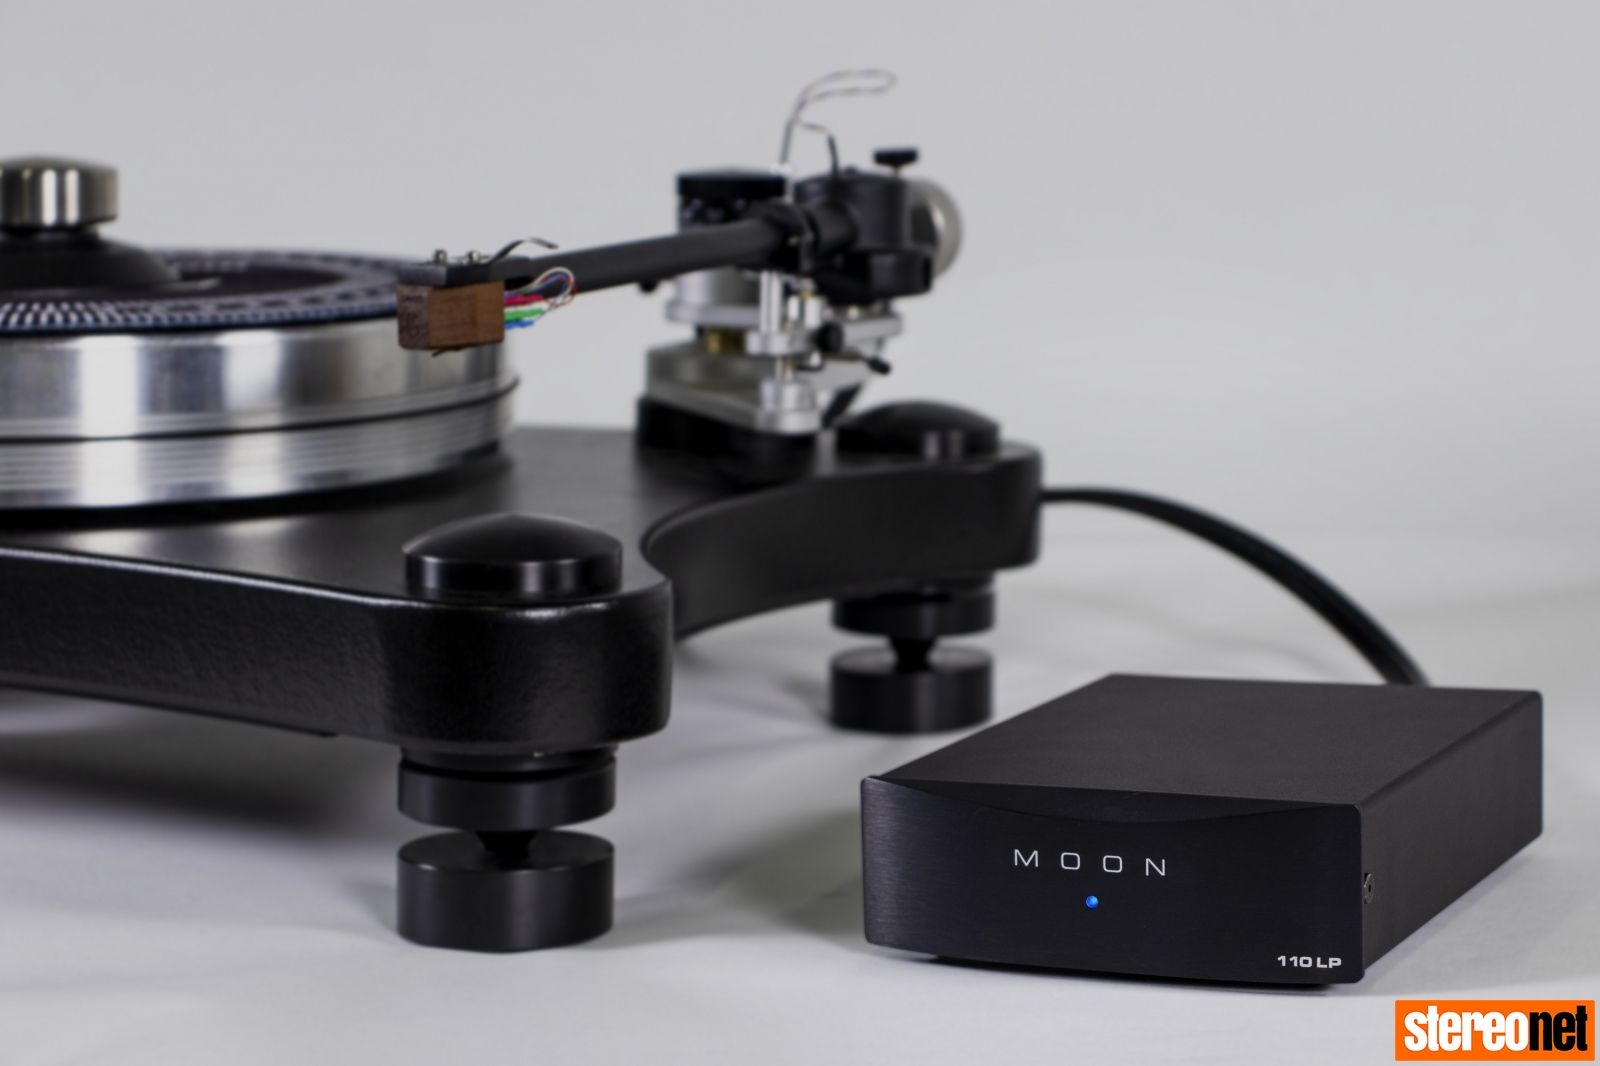 MOON 110LP v2 Review